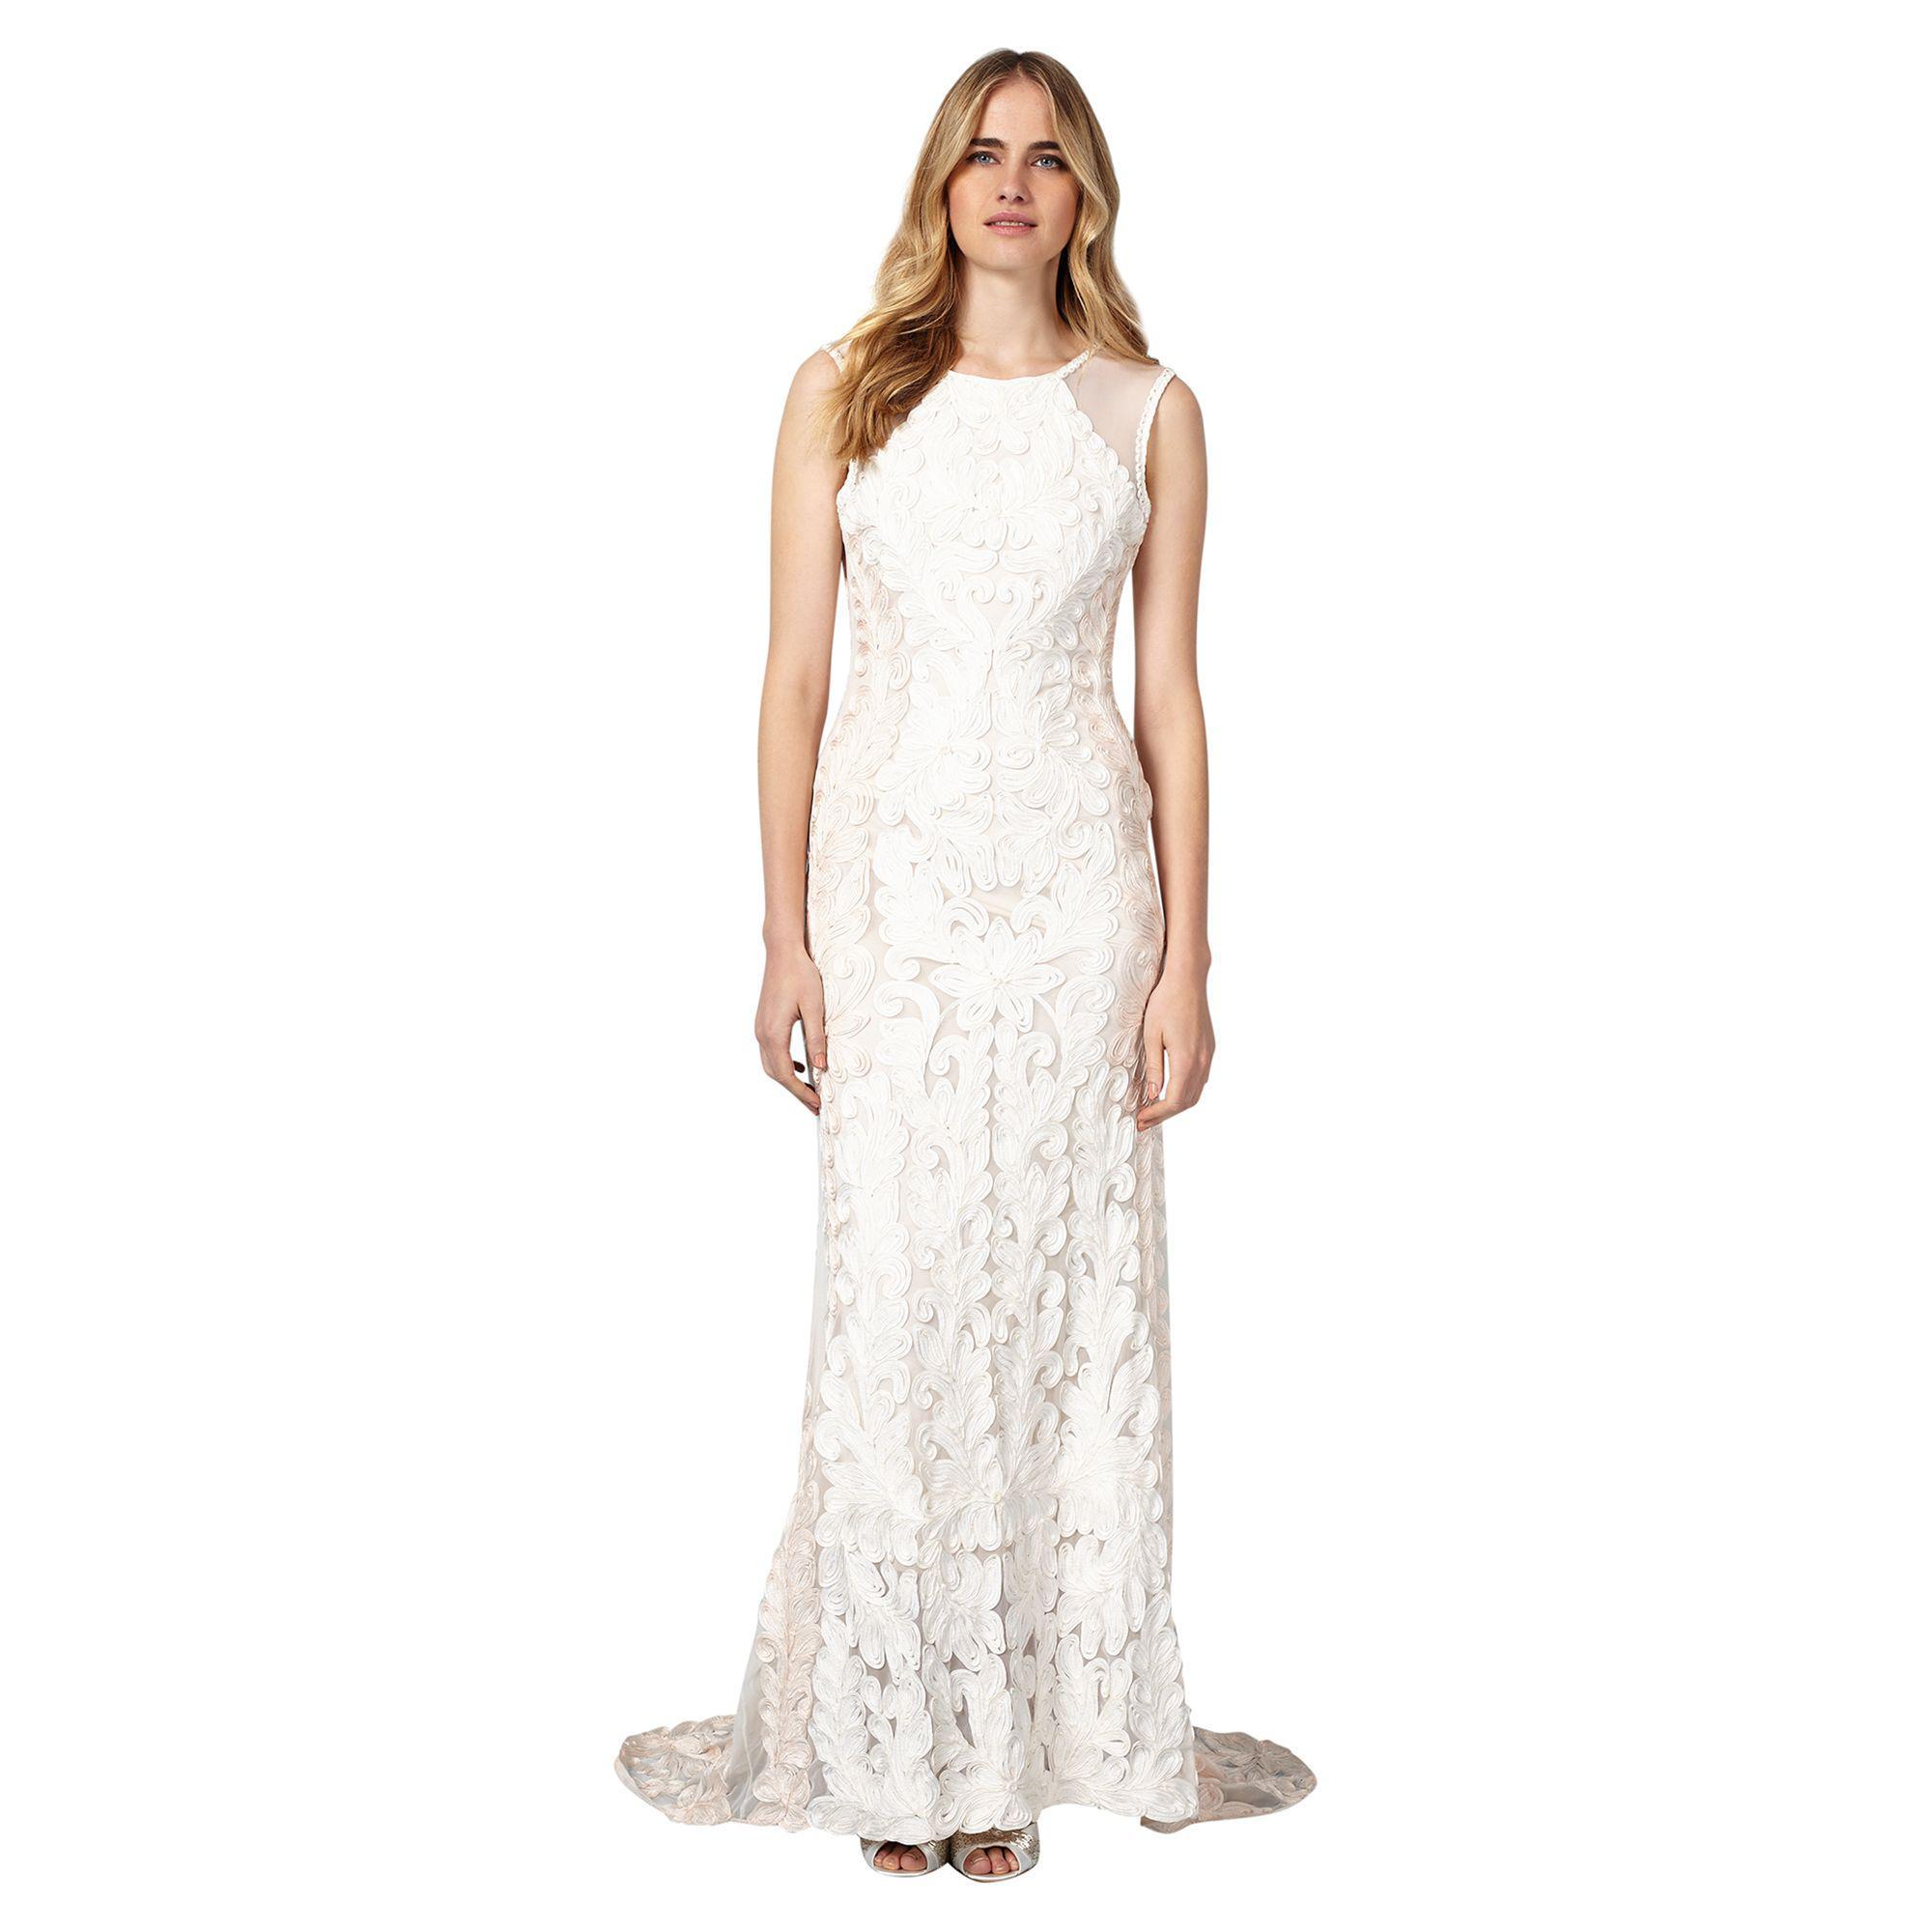 2c71d0fc128d9 Phase Eight Cailyn Bridal Dress in White - Lyst